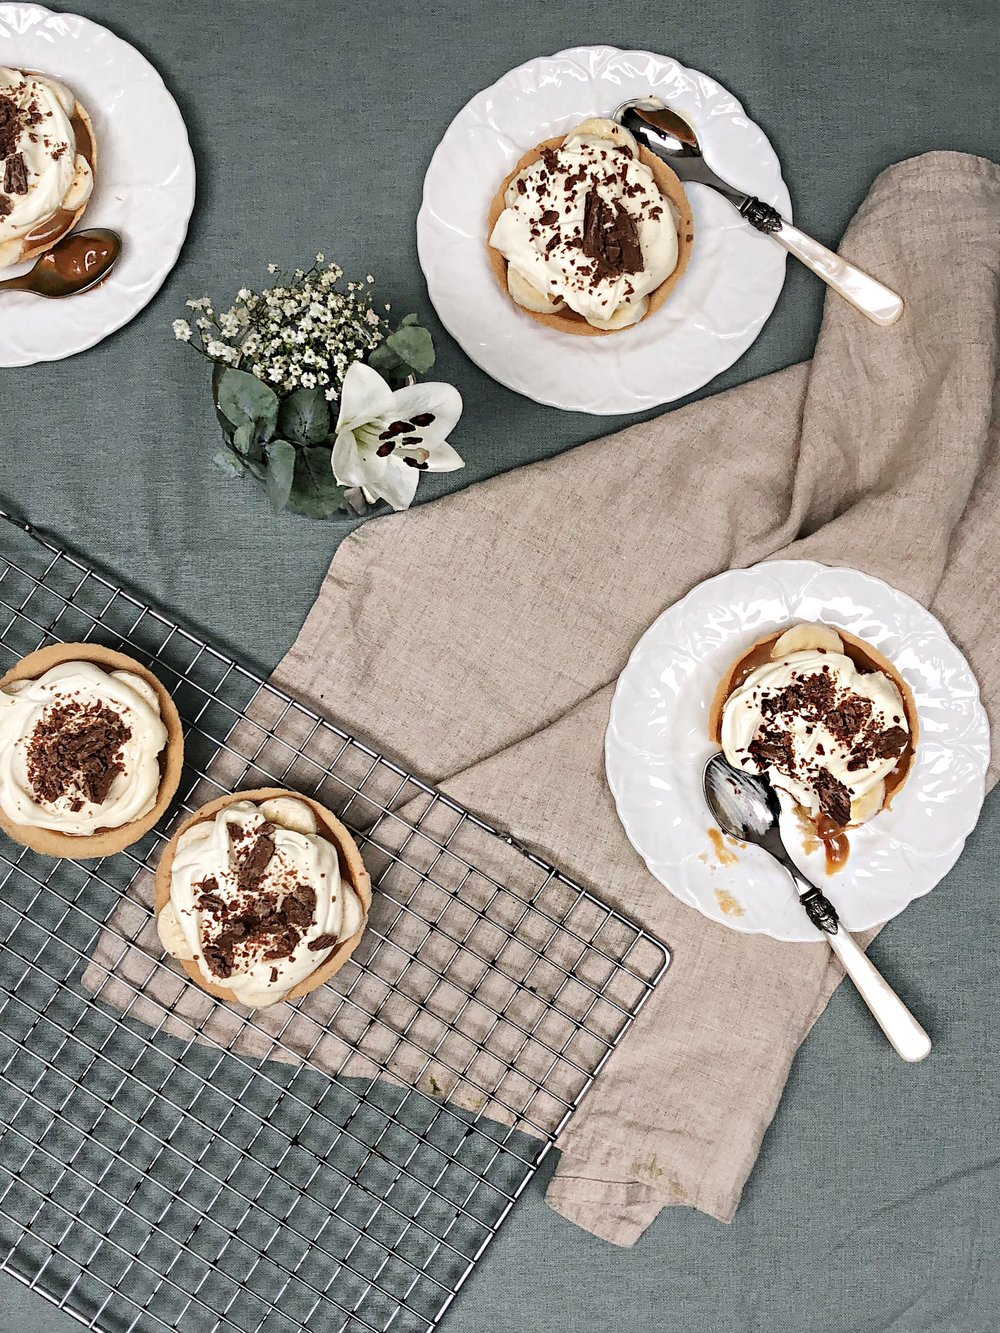 mini banoffee pie - desert island dishes - inspired by Gizzi Erskine - Margie Nomura